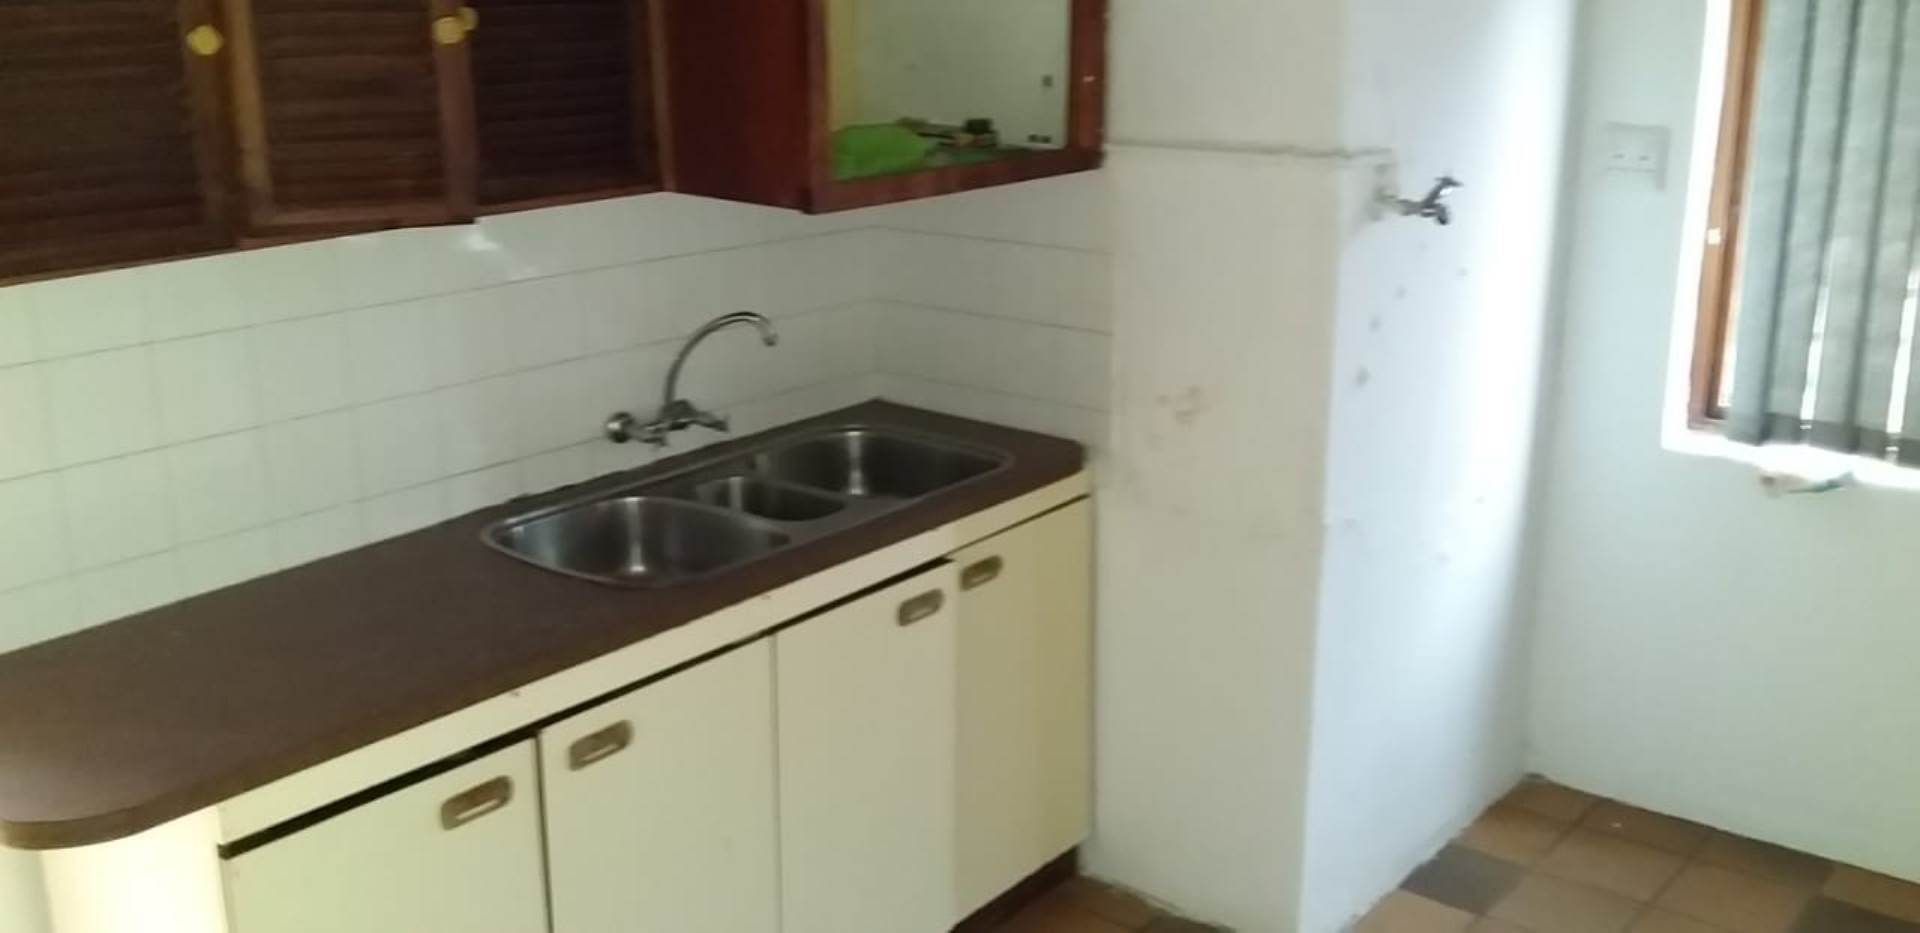 Flat To Rent In Central, Empangeni, Kwazulu Natal for R